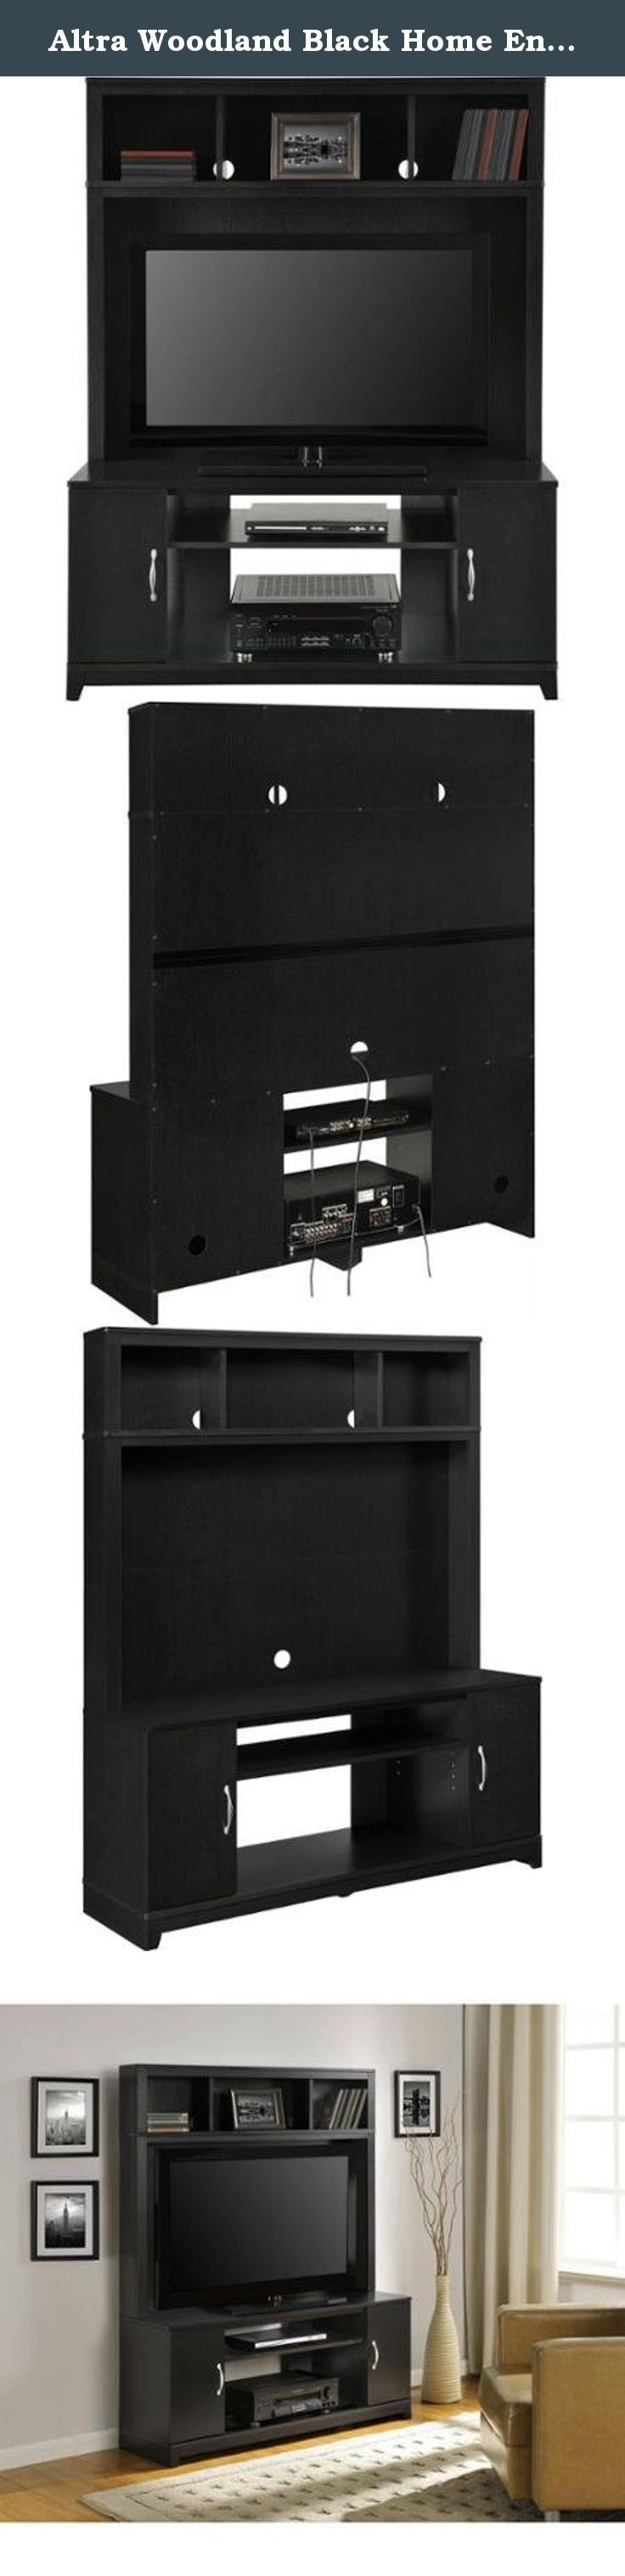 """Altra Woodland Black Home Entertainment Center for TVs up to 42"""" With Lots Of Storage Shelves And Cabinets. The Woodland Home Entertainment Center provides you a TV Stand and storage center all in one. With lots of storage shelves and cabinets, there won't be any more DVD mess or cord clutter! This entertainment center will provide you with the large look you want without hurting your wallet."""